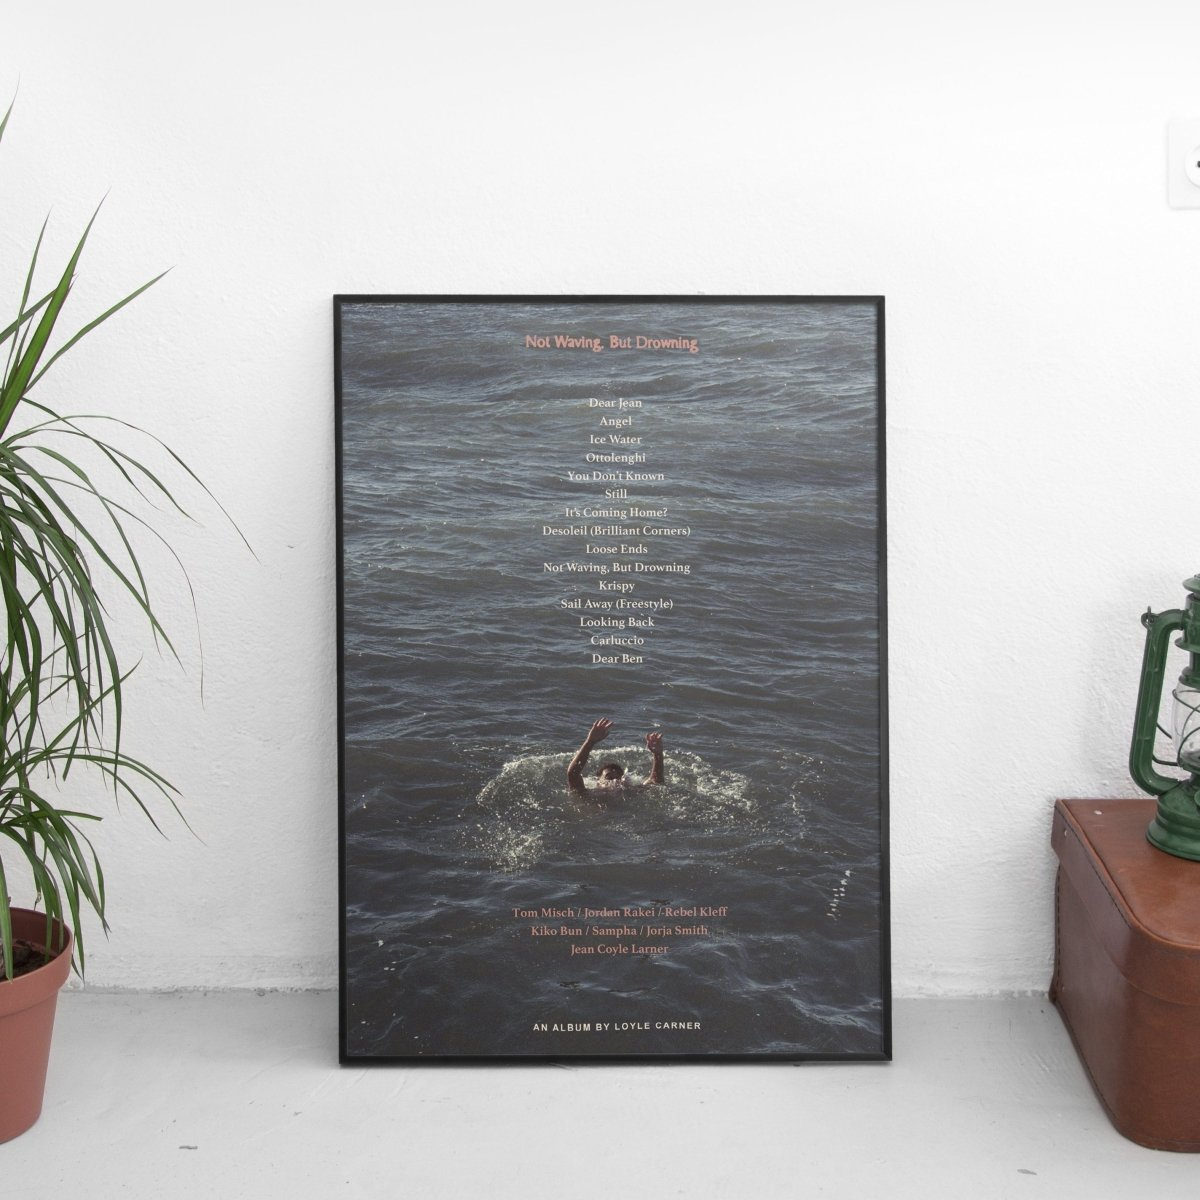 Loyle Carner - Not Waving, But Drowning Poster